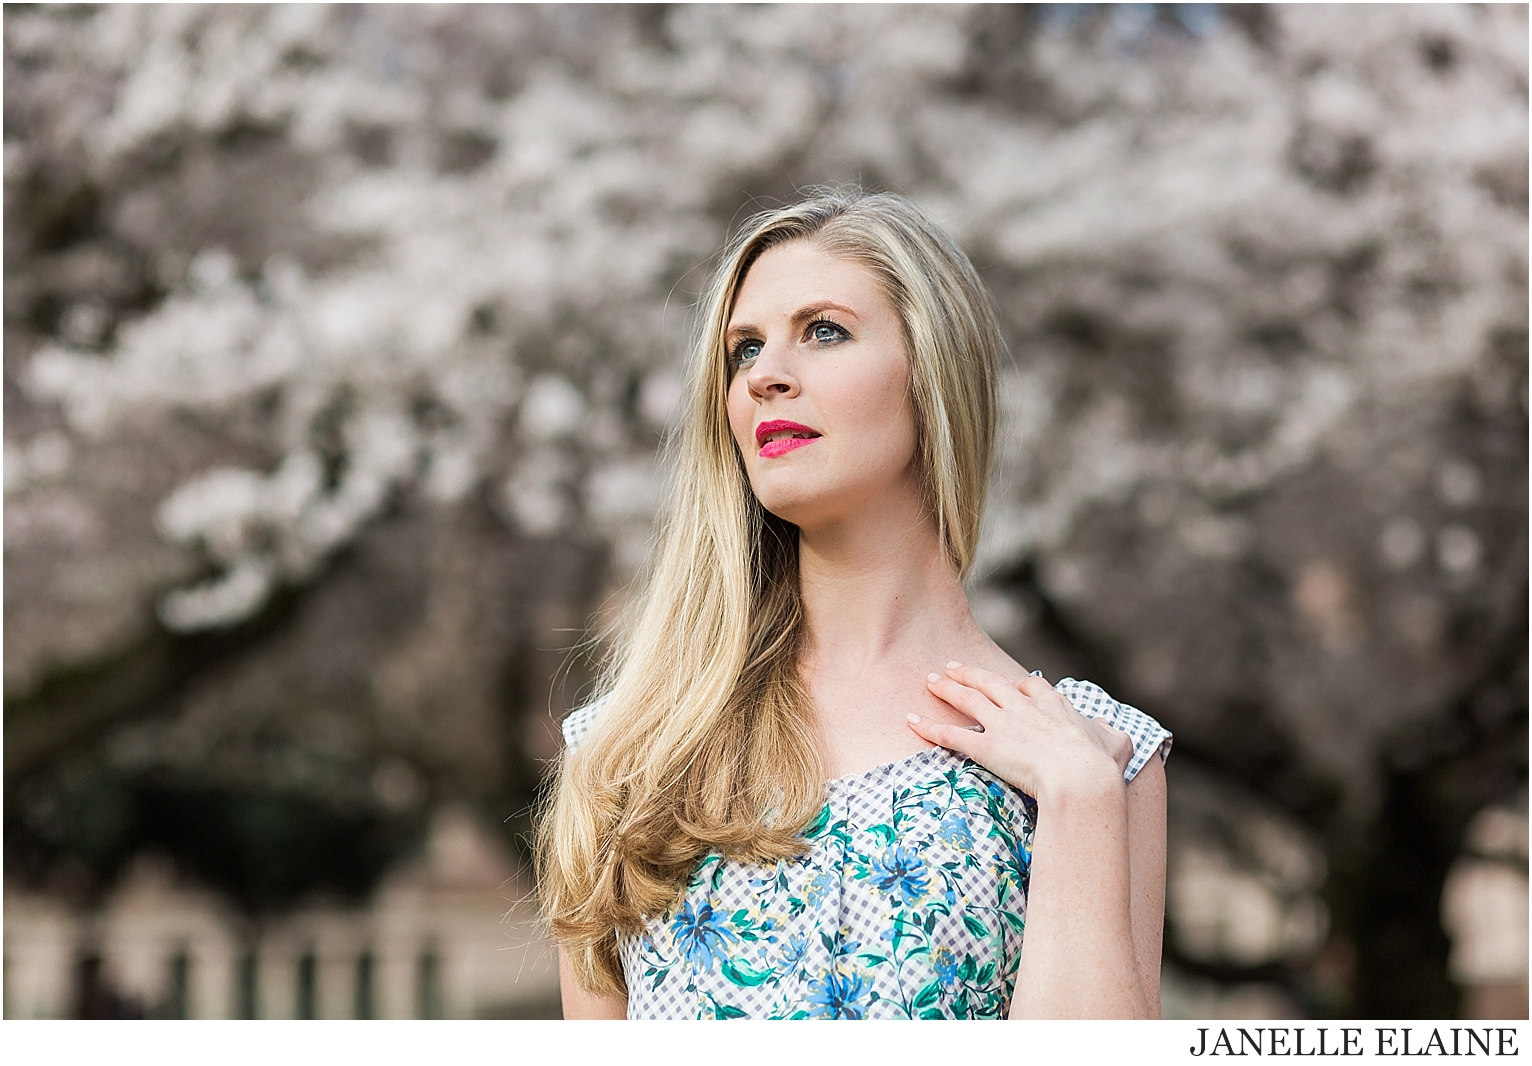 brooke-spring photo session-uw-seattle portrait photographer janelle elaine photography-39.jpg